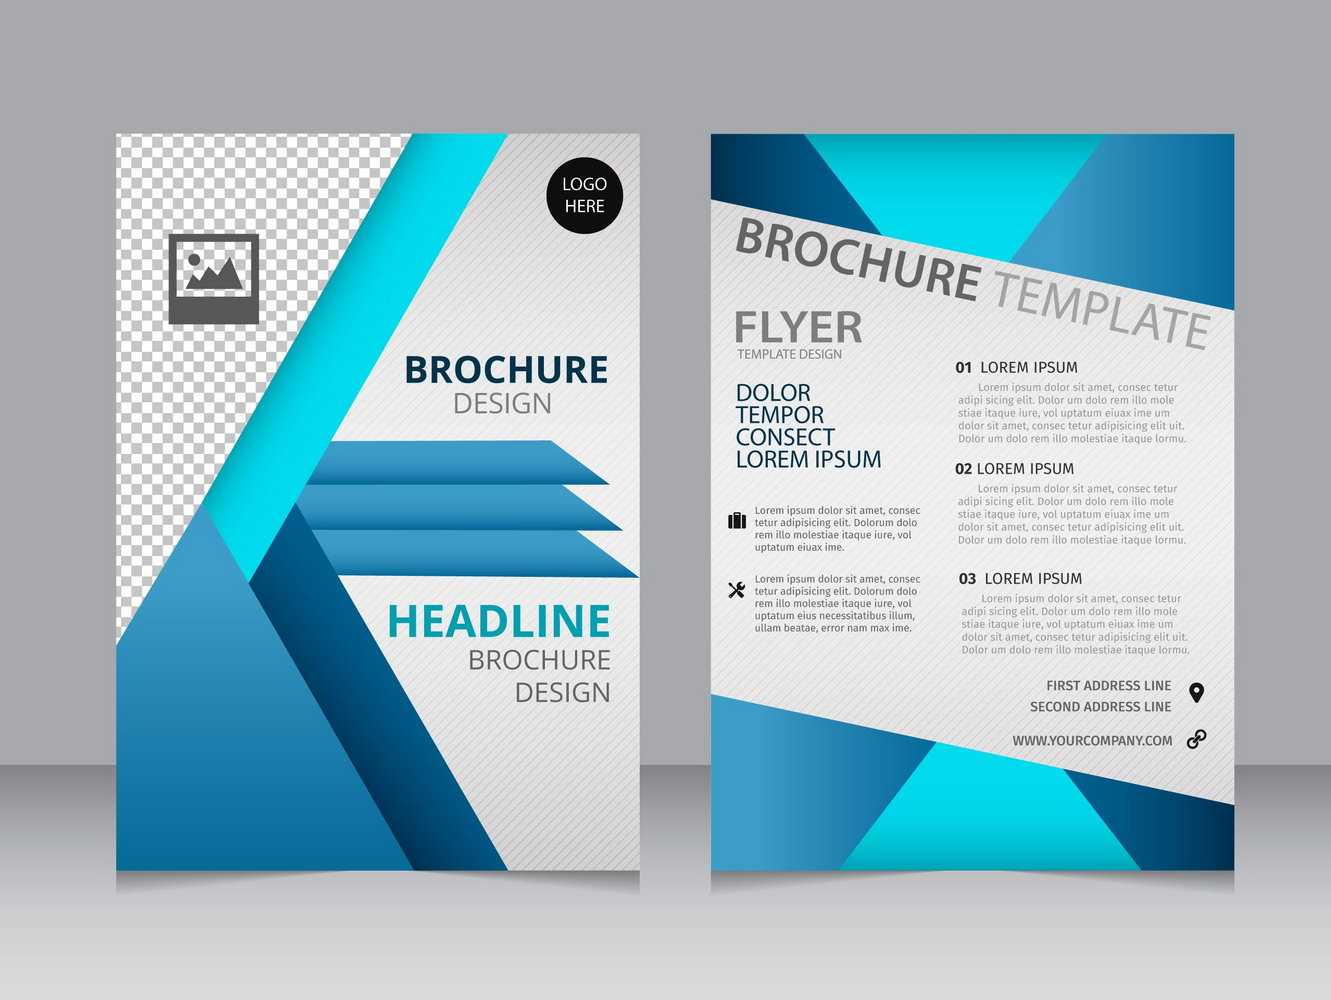 024 Trifold Brochure Template Templatelab Com Ideas Throughout Free Brochure Templates For Word 2010